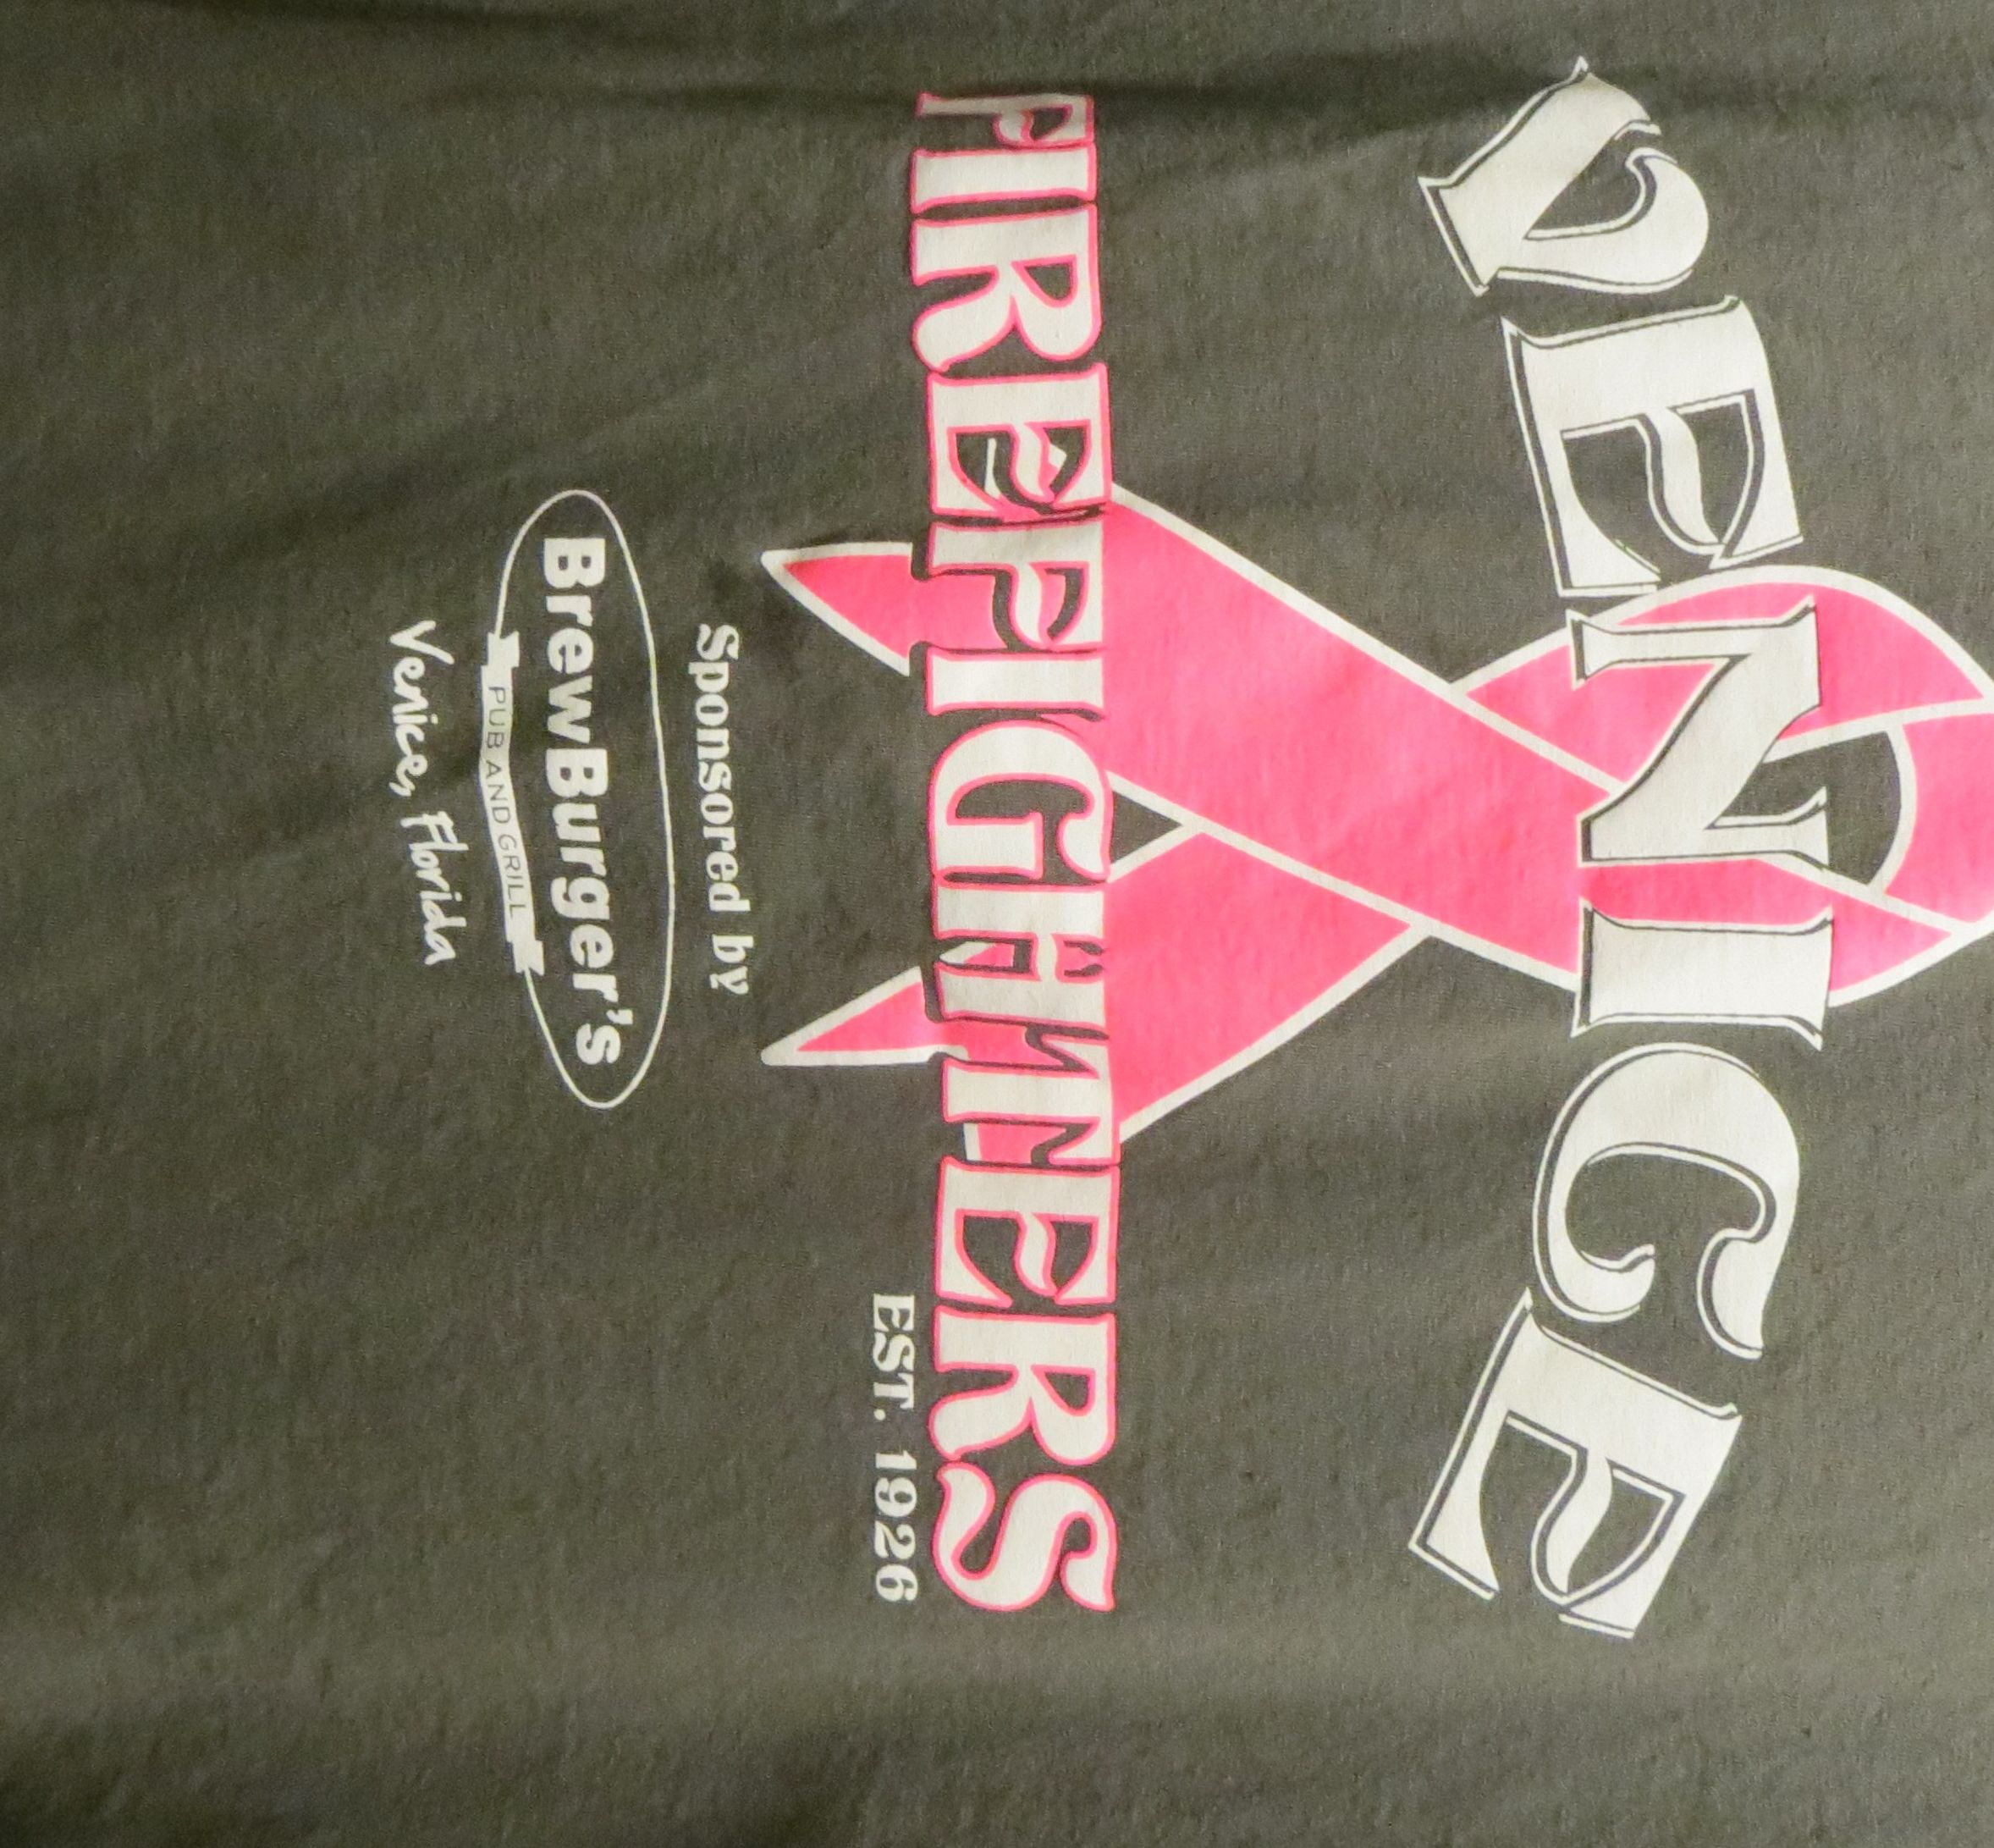 Breast cancer awareness 14 ponisi